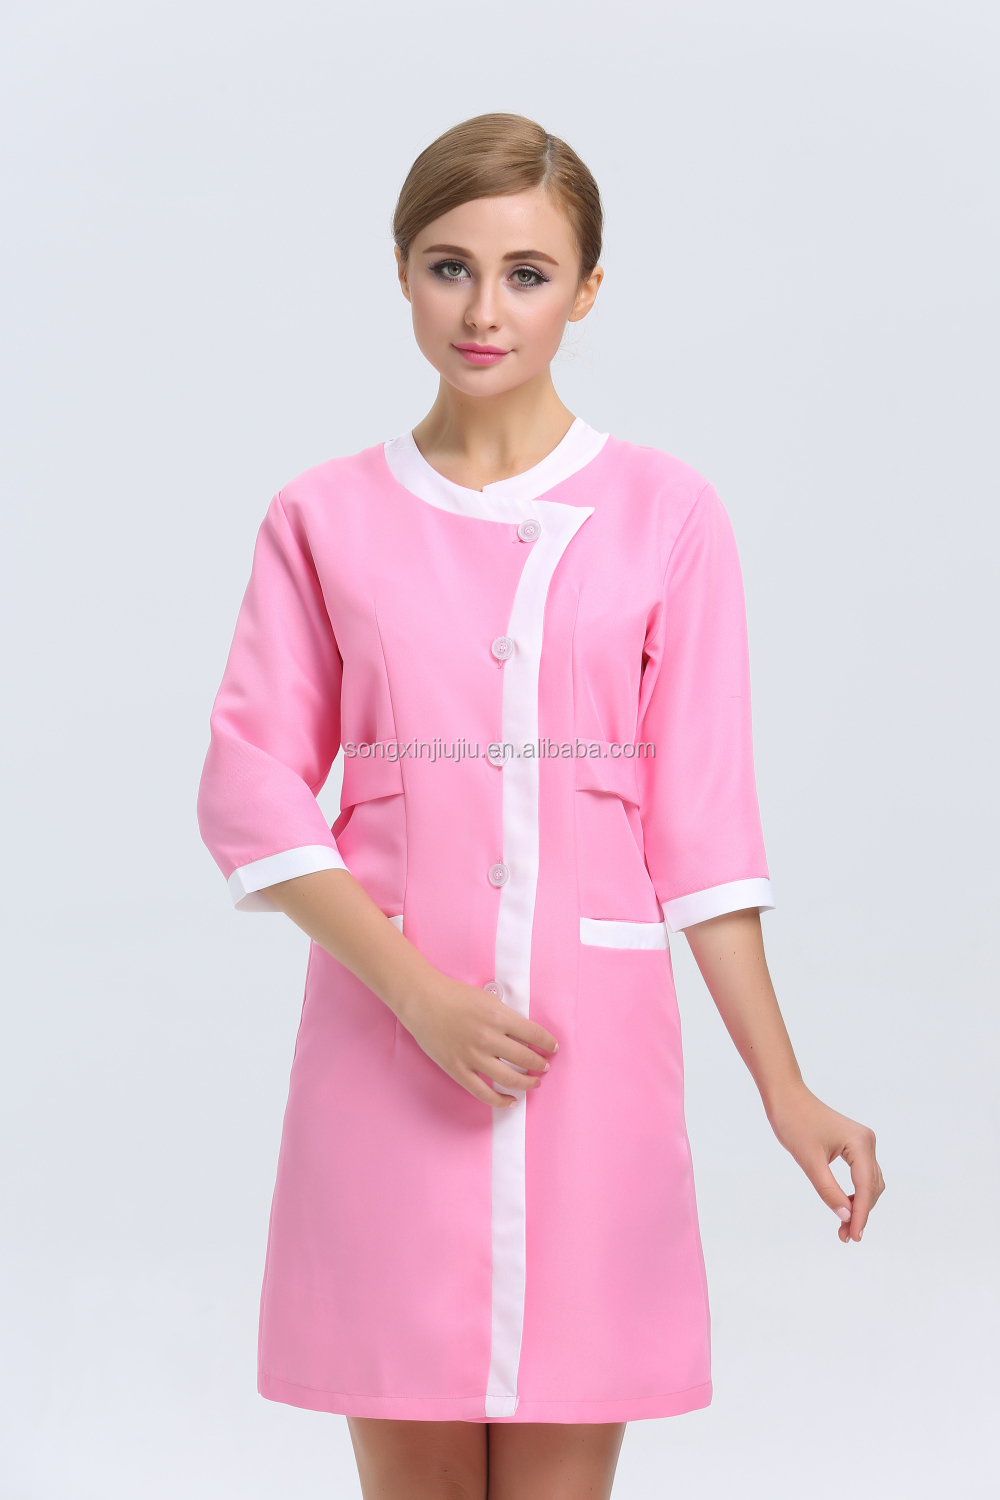 New arrival summer beauty salon uniform spa uniform hair for Spa uniform indonesia